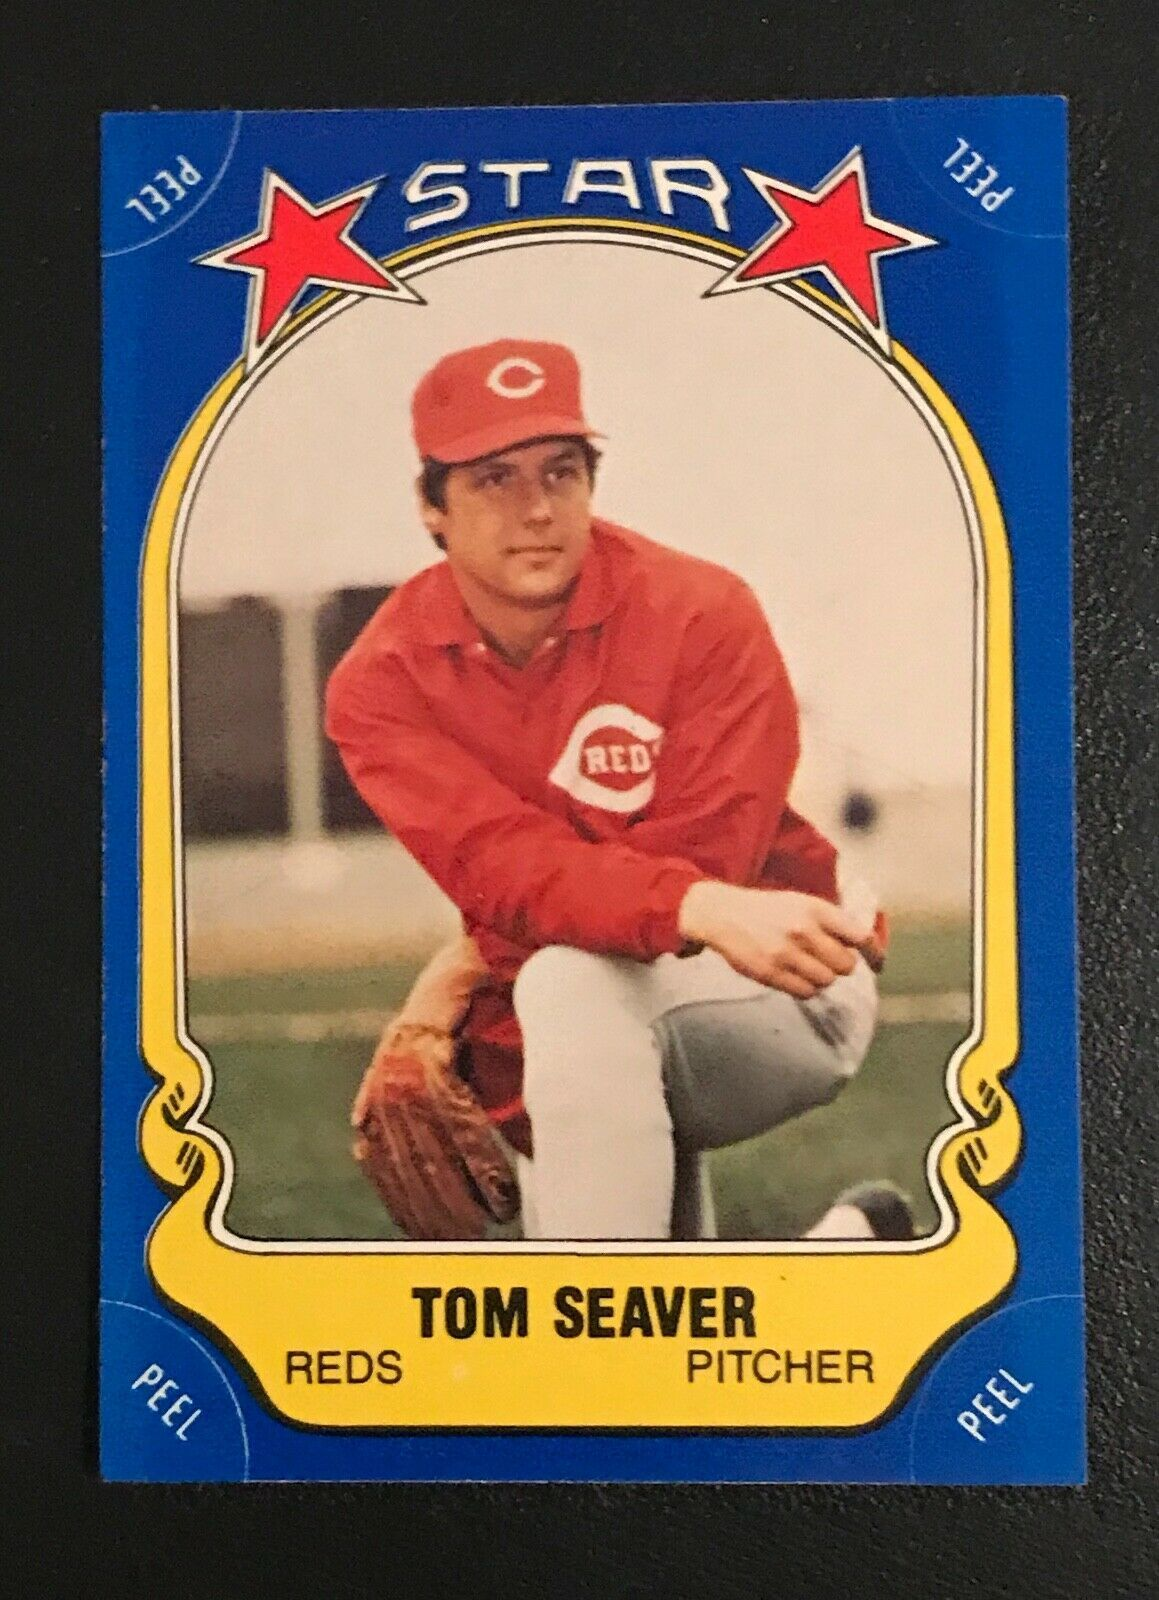 Primary image for 1981 Fleer Star Sticker Tom Seaver #49  REDS